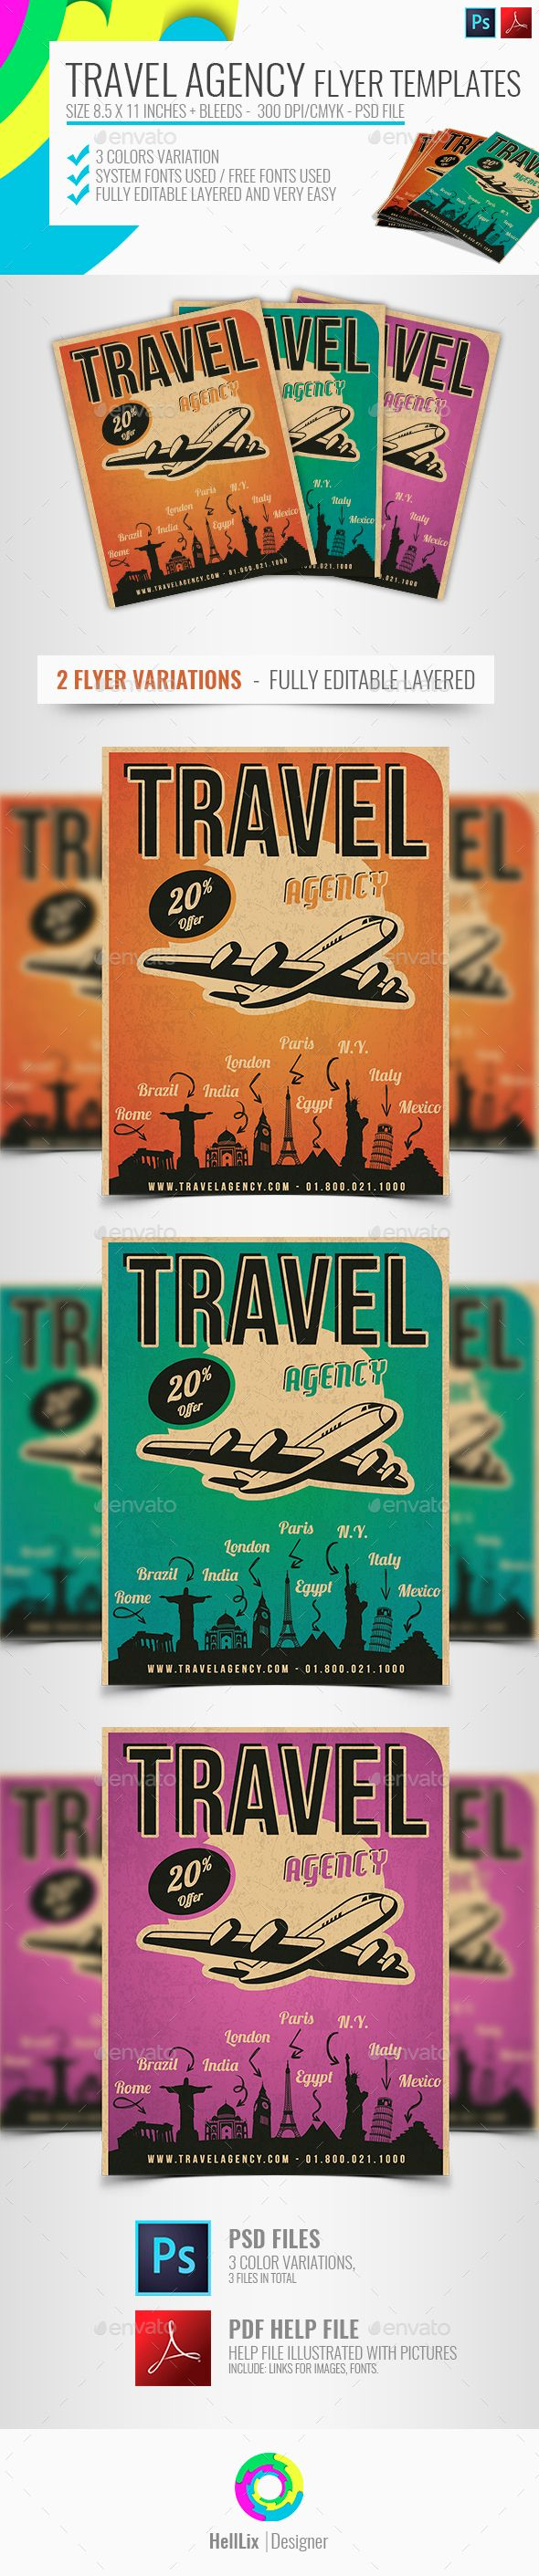 Travel Agency Flyer | Corporate business, Business cards and Flyer ...